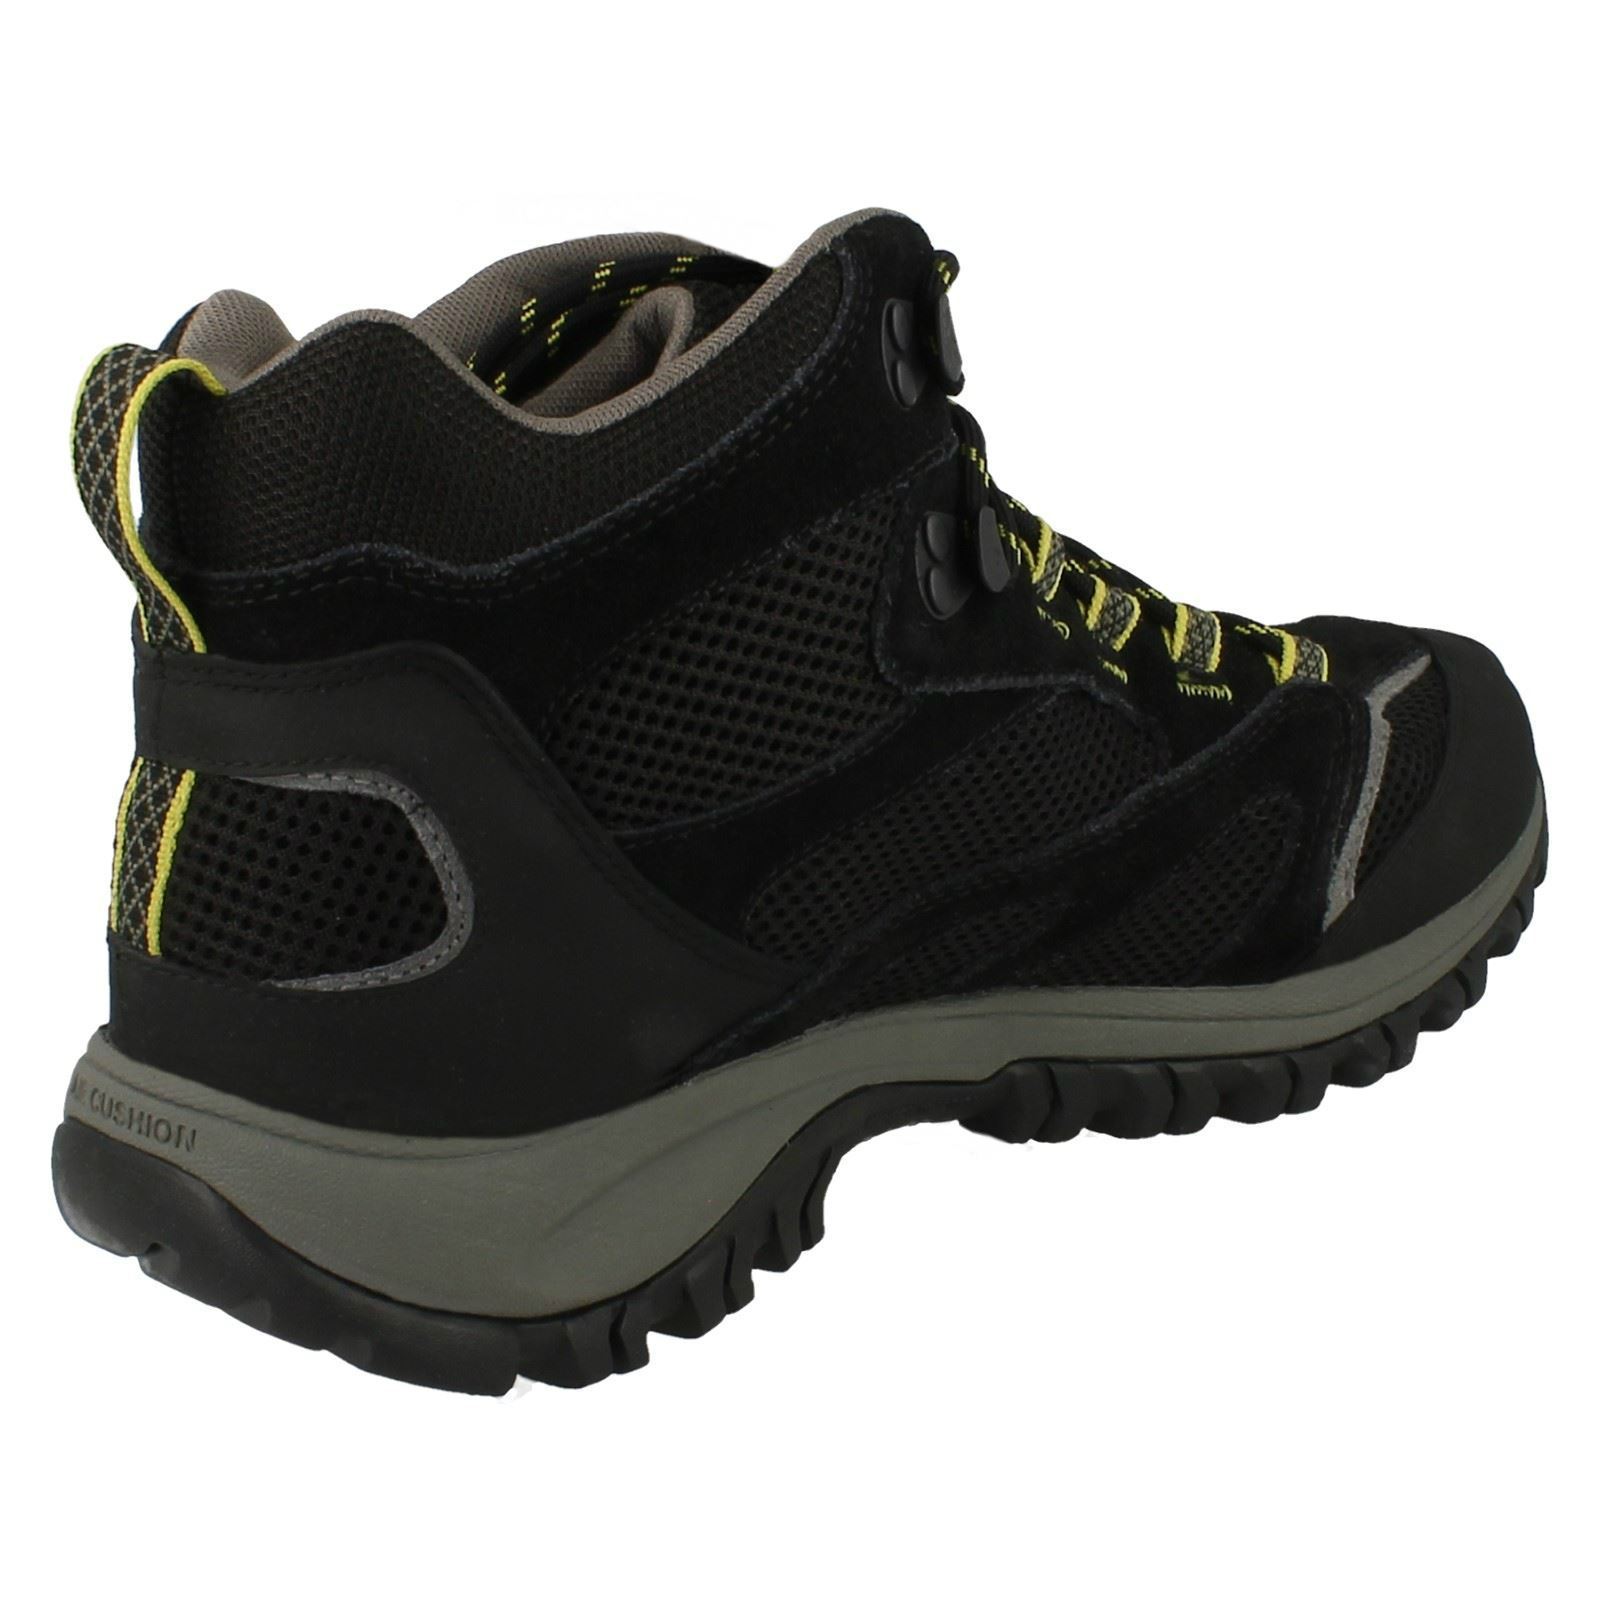 thumbnail 5 - Mens-Merrell-Phoenix-Mid-Waterproof-Walking-Boots